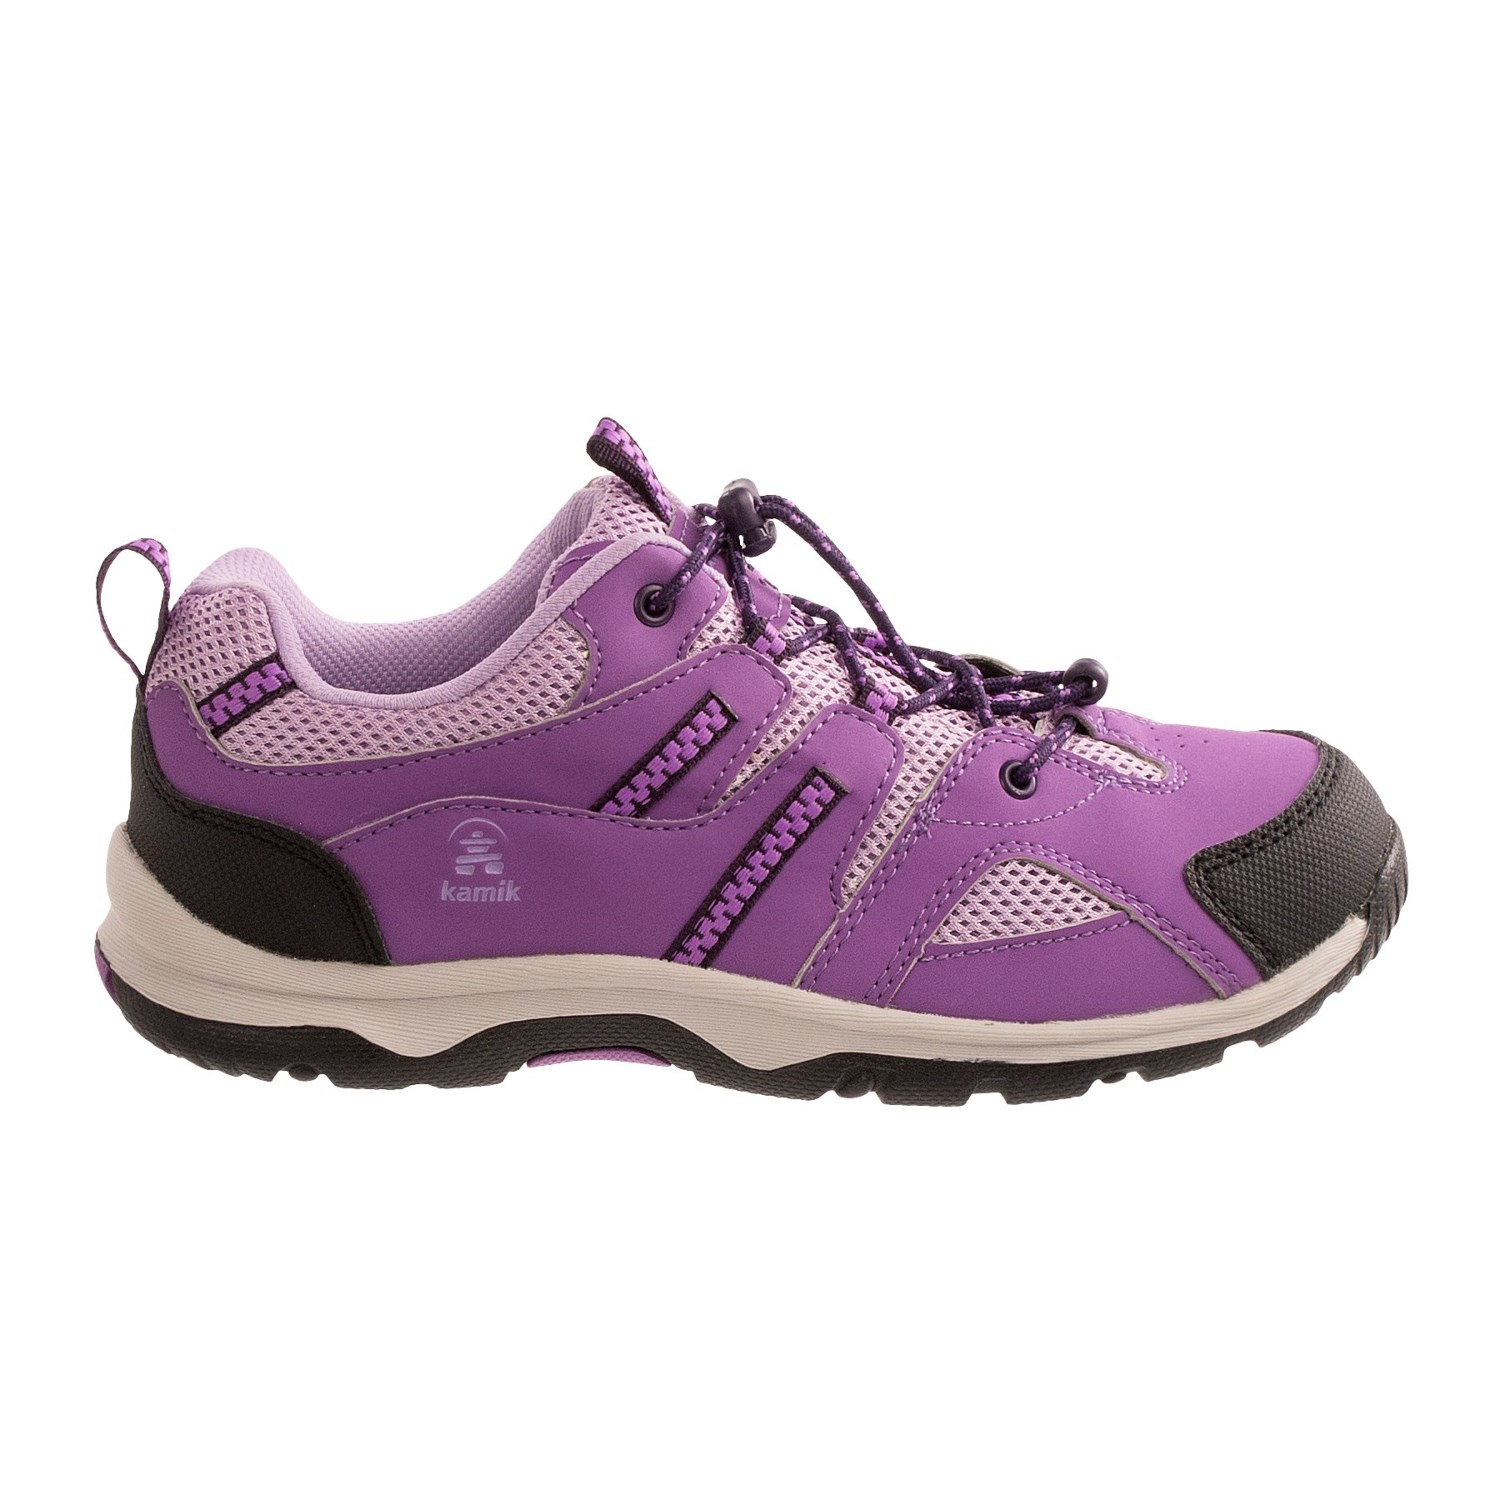 kamik searcher shoes for and youth 8966x save 57